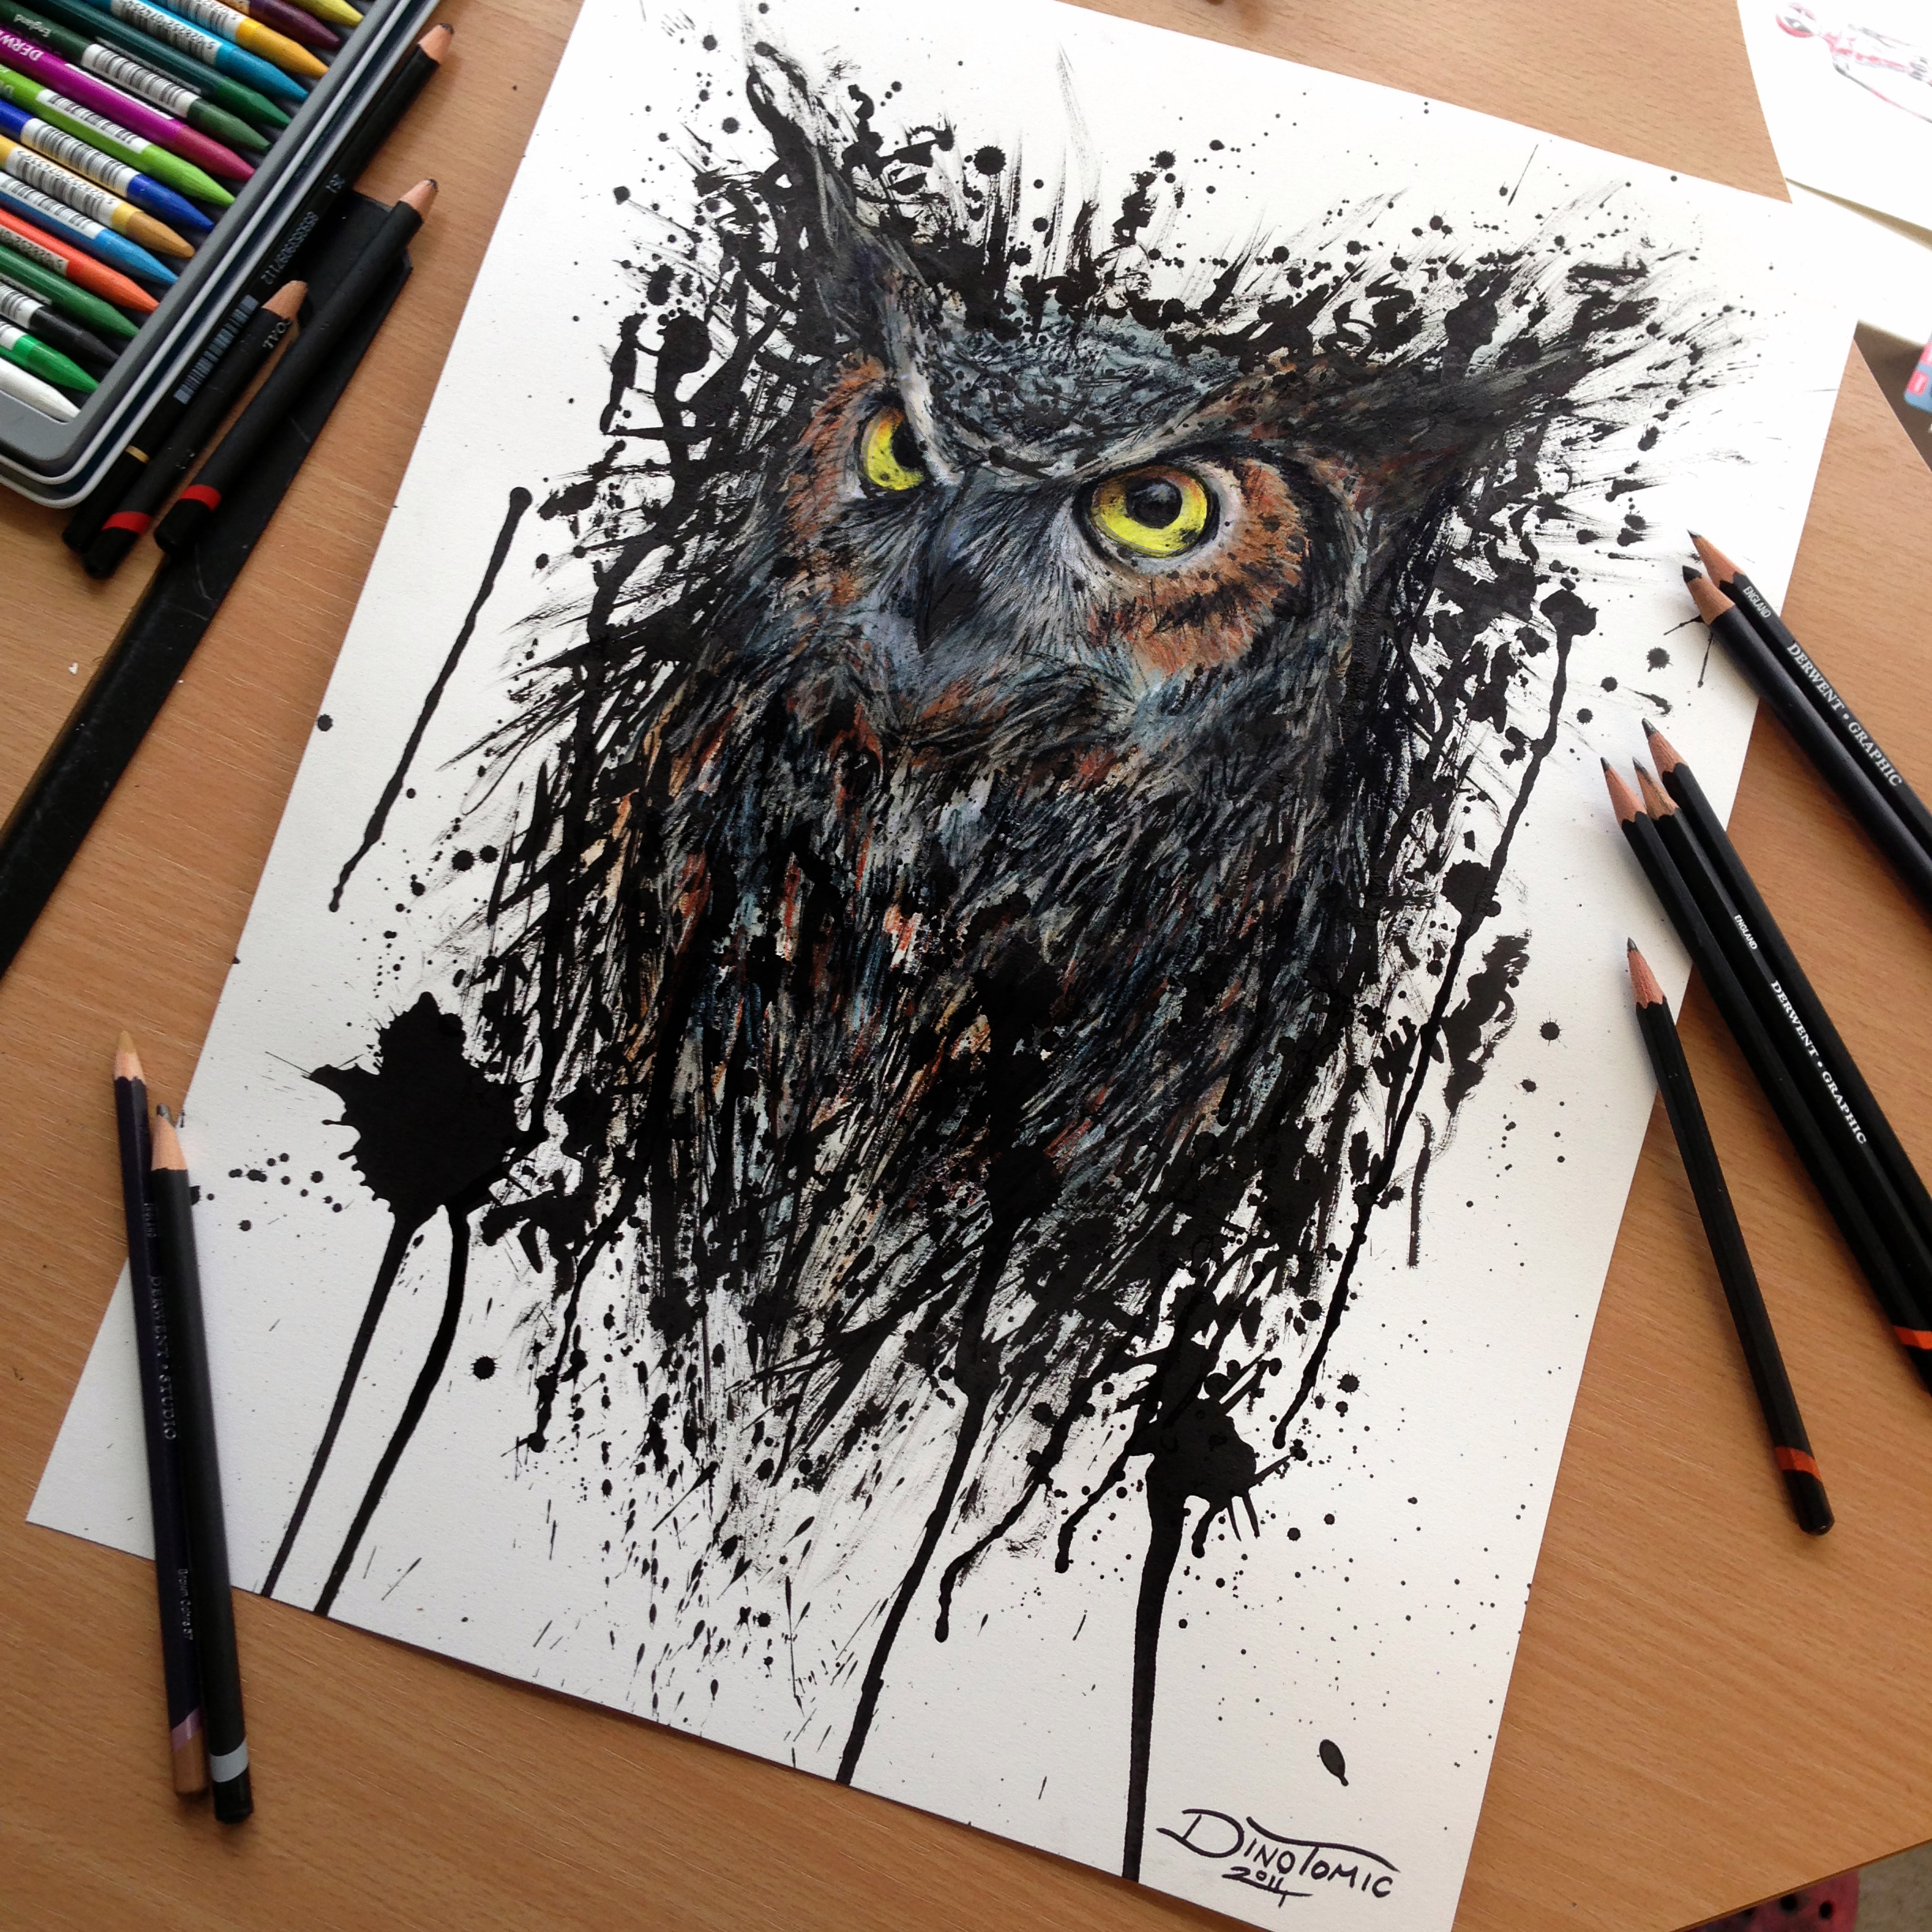 Abstract Owl Watercolor Drawing By AtomiccircuS On DeviantArt